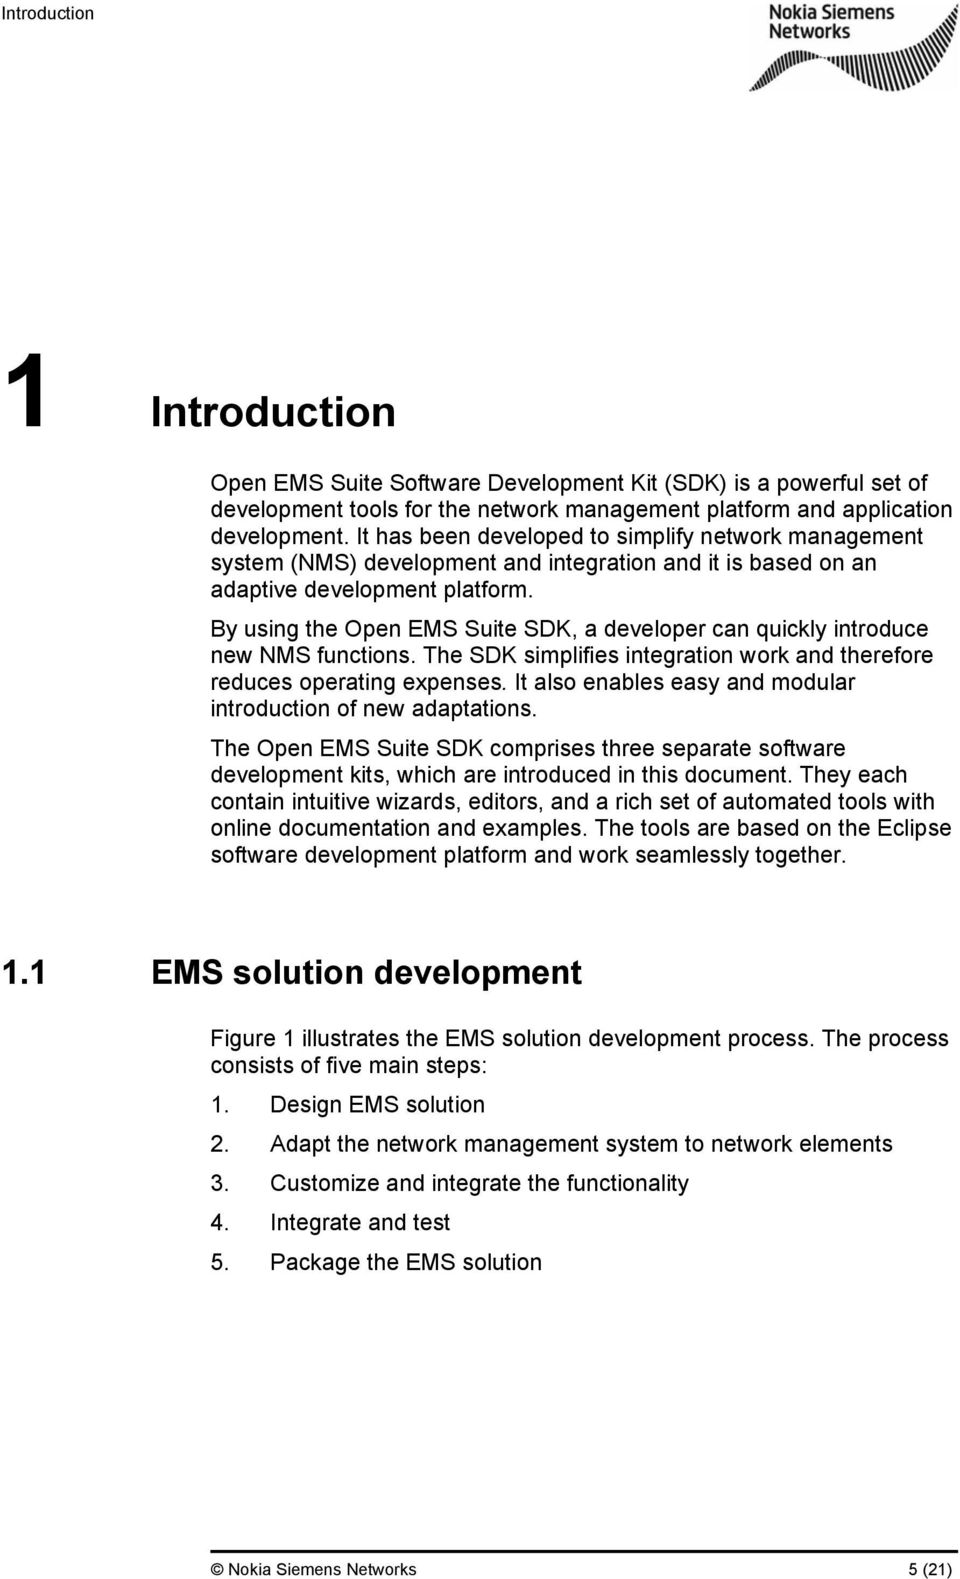 By using the Open EMS Suite SDK, a developer can quickly introduce new NMS functions. The SDK simplifies integration work and therefore reduces operating expenses.